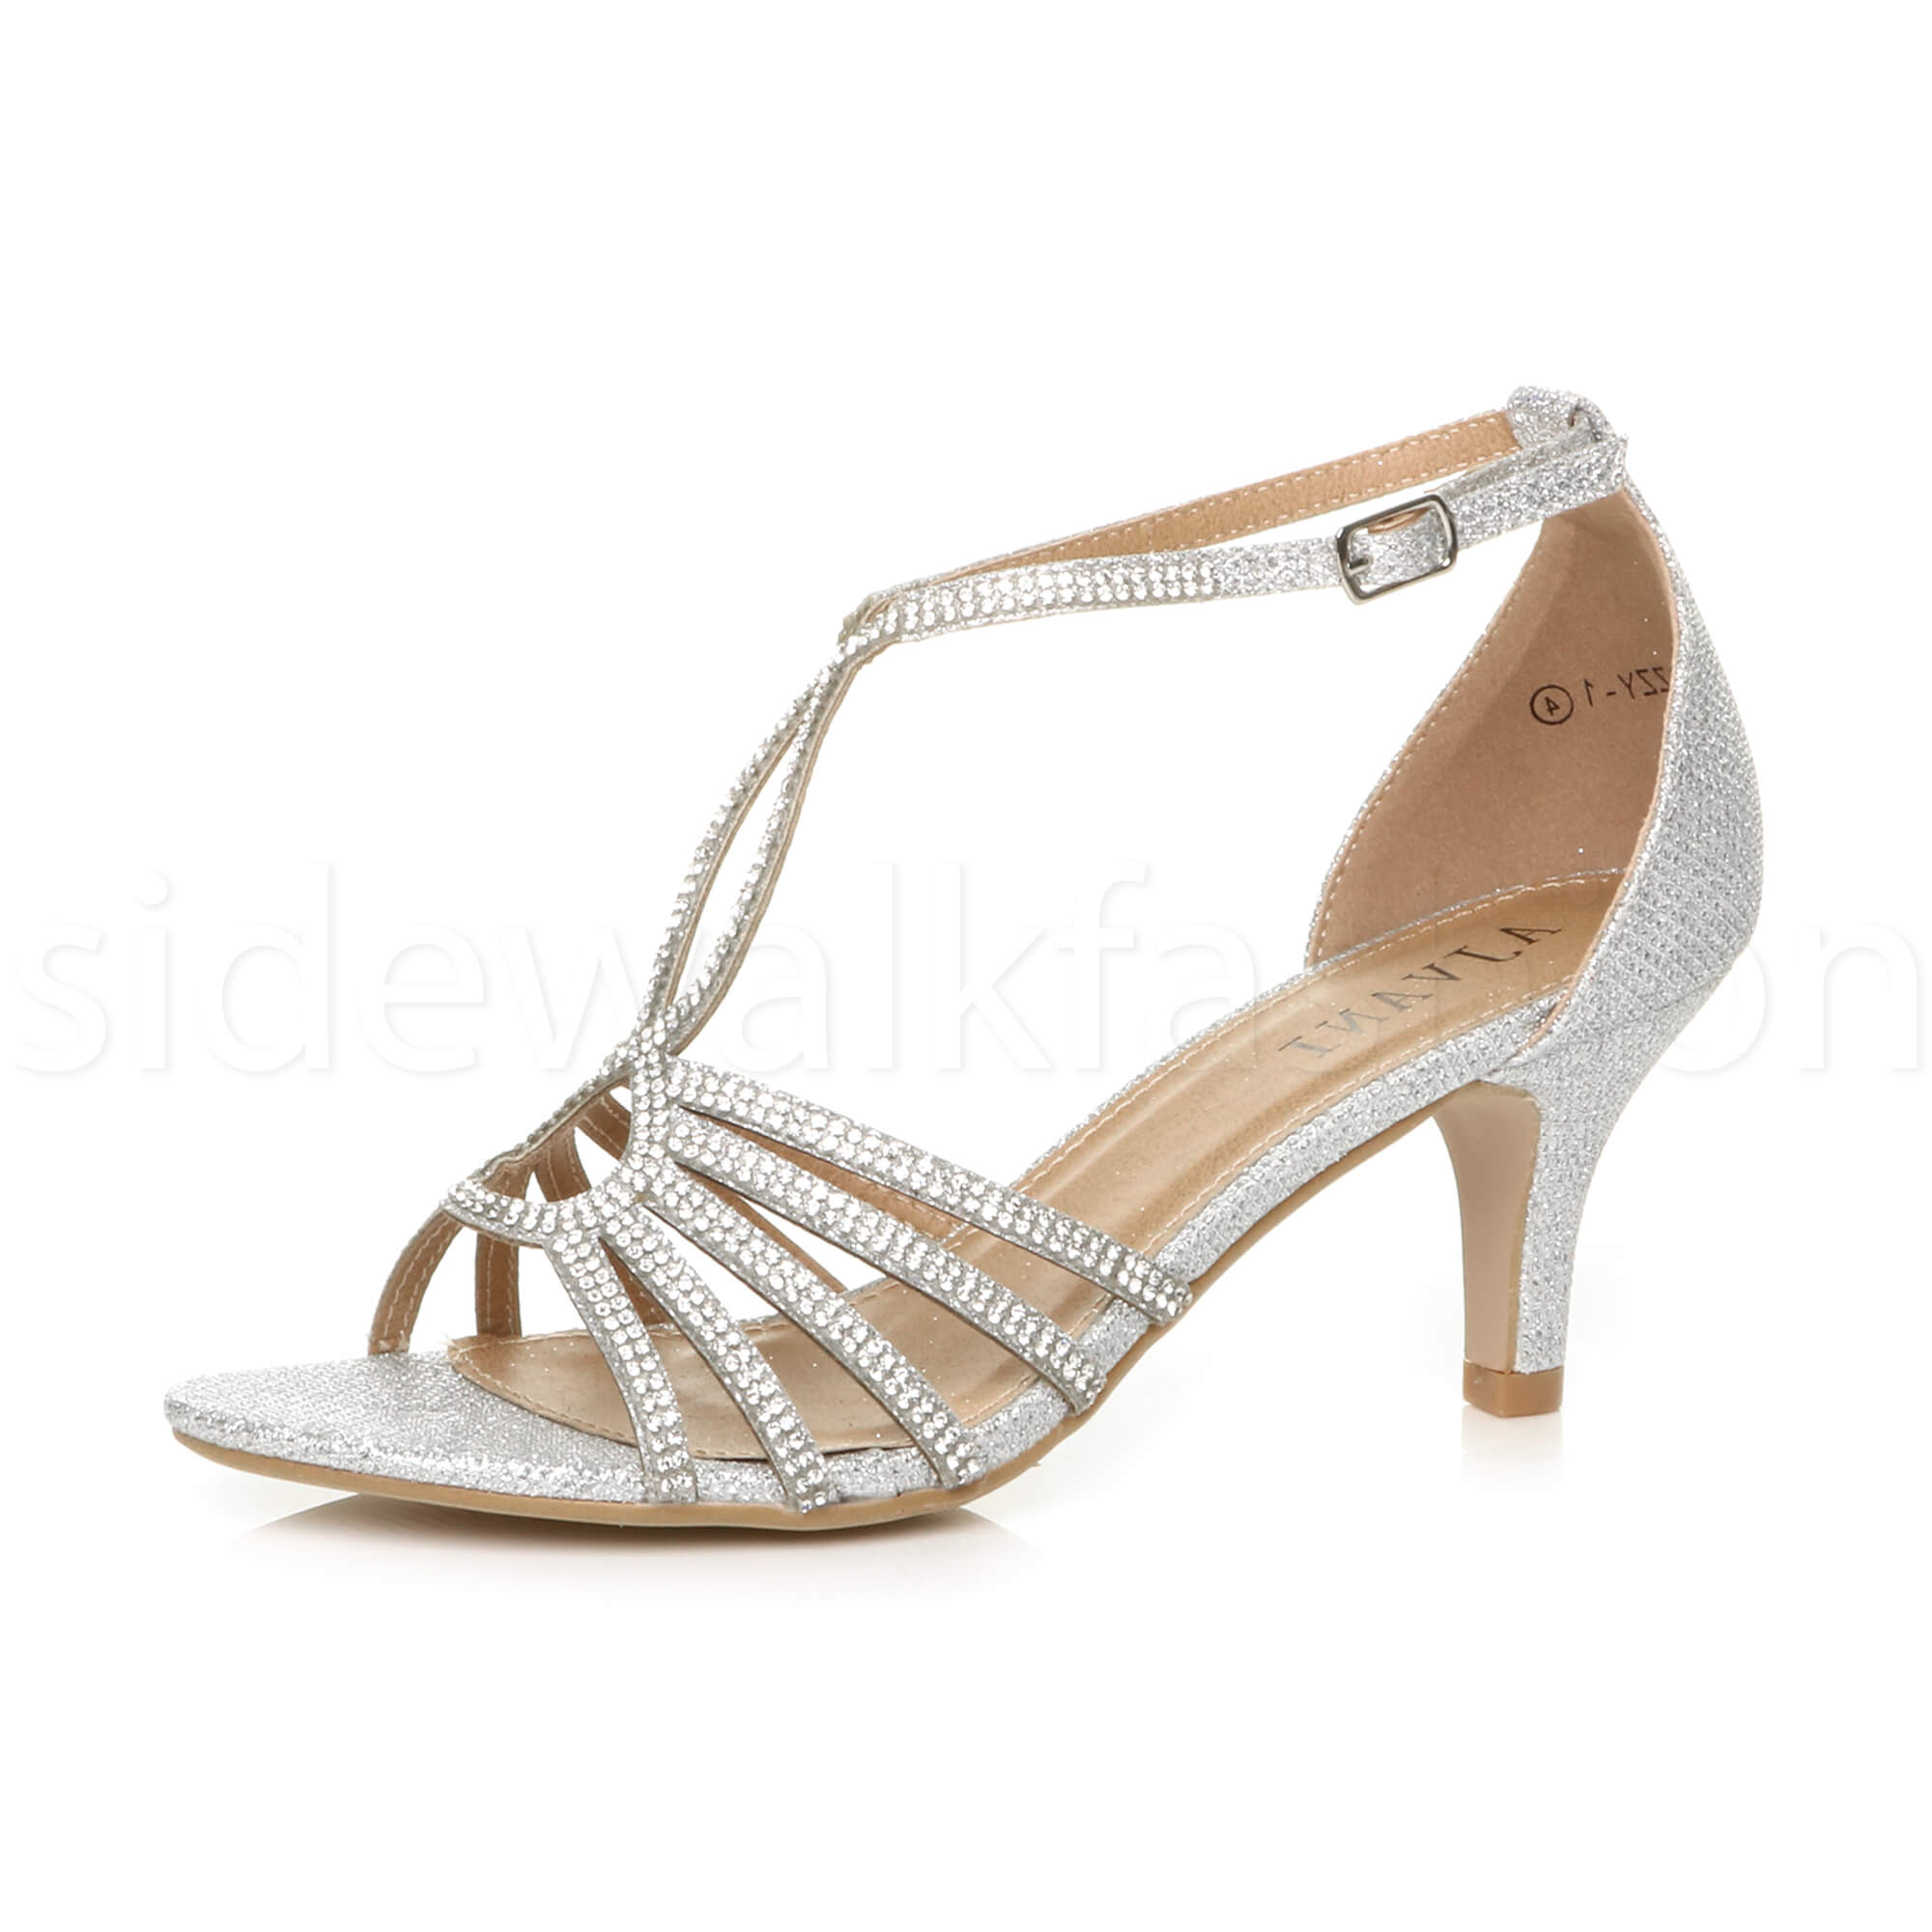 aee364437c6f Womens ladies medium heel wedding bridal t-bar strappy sandals prom shoes  size